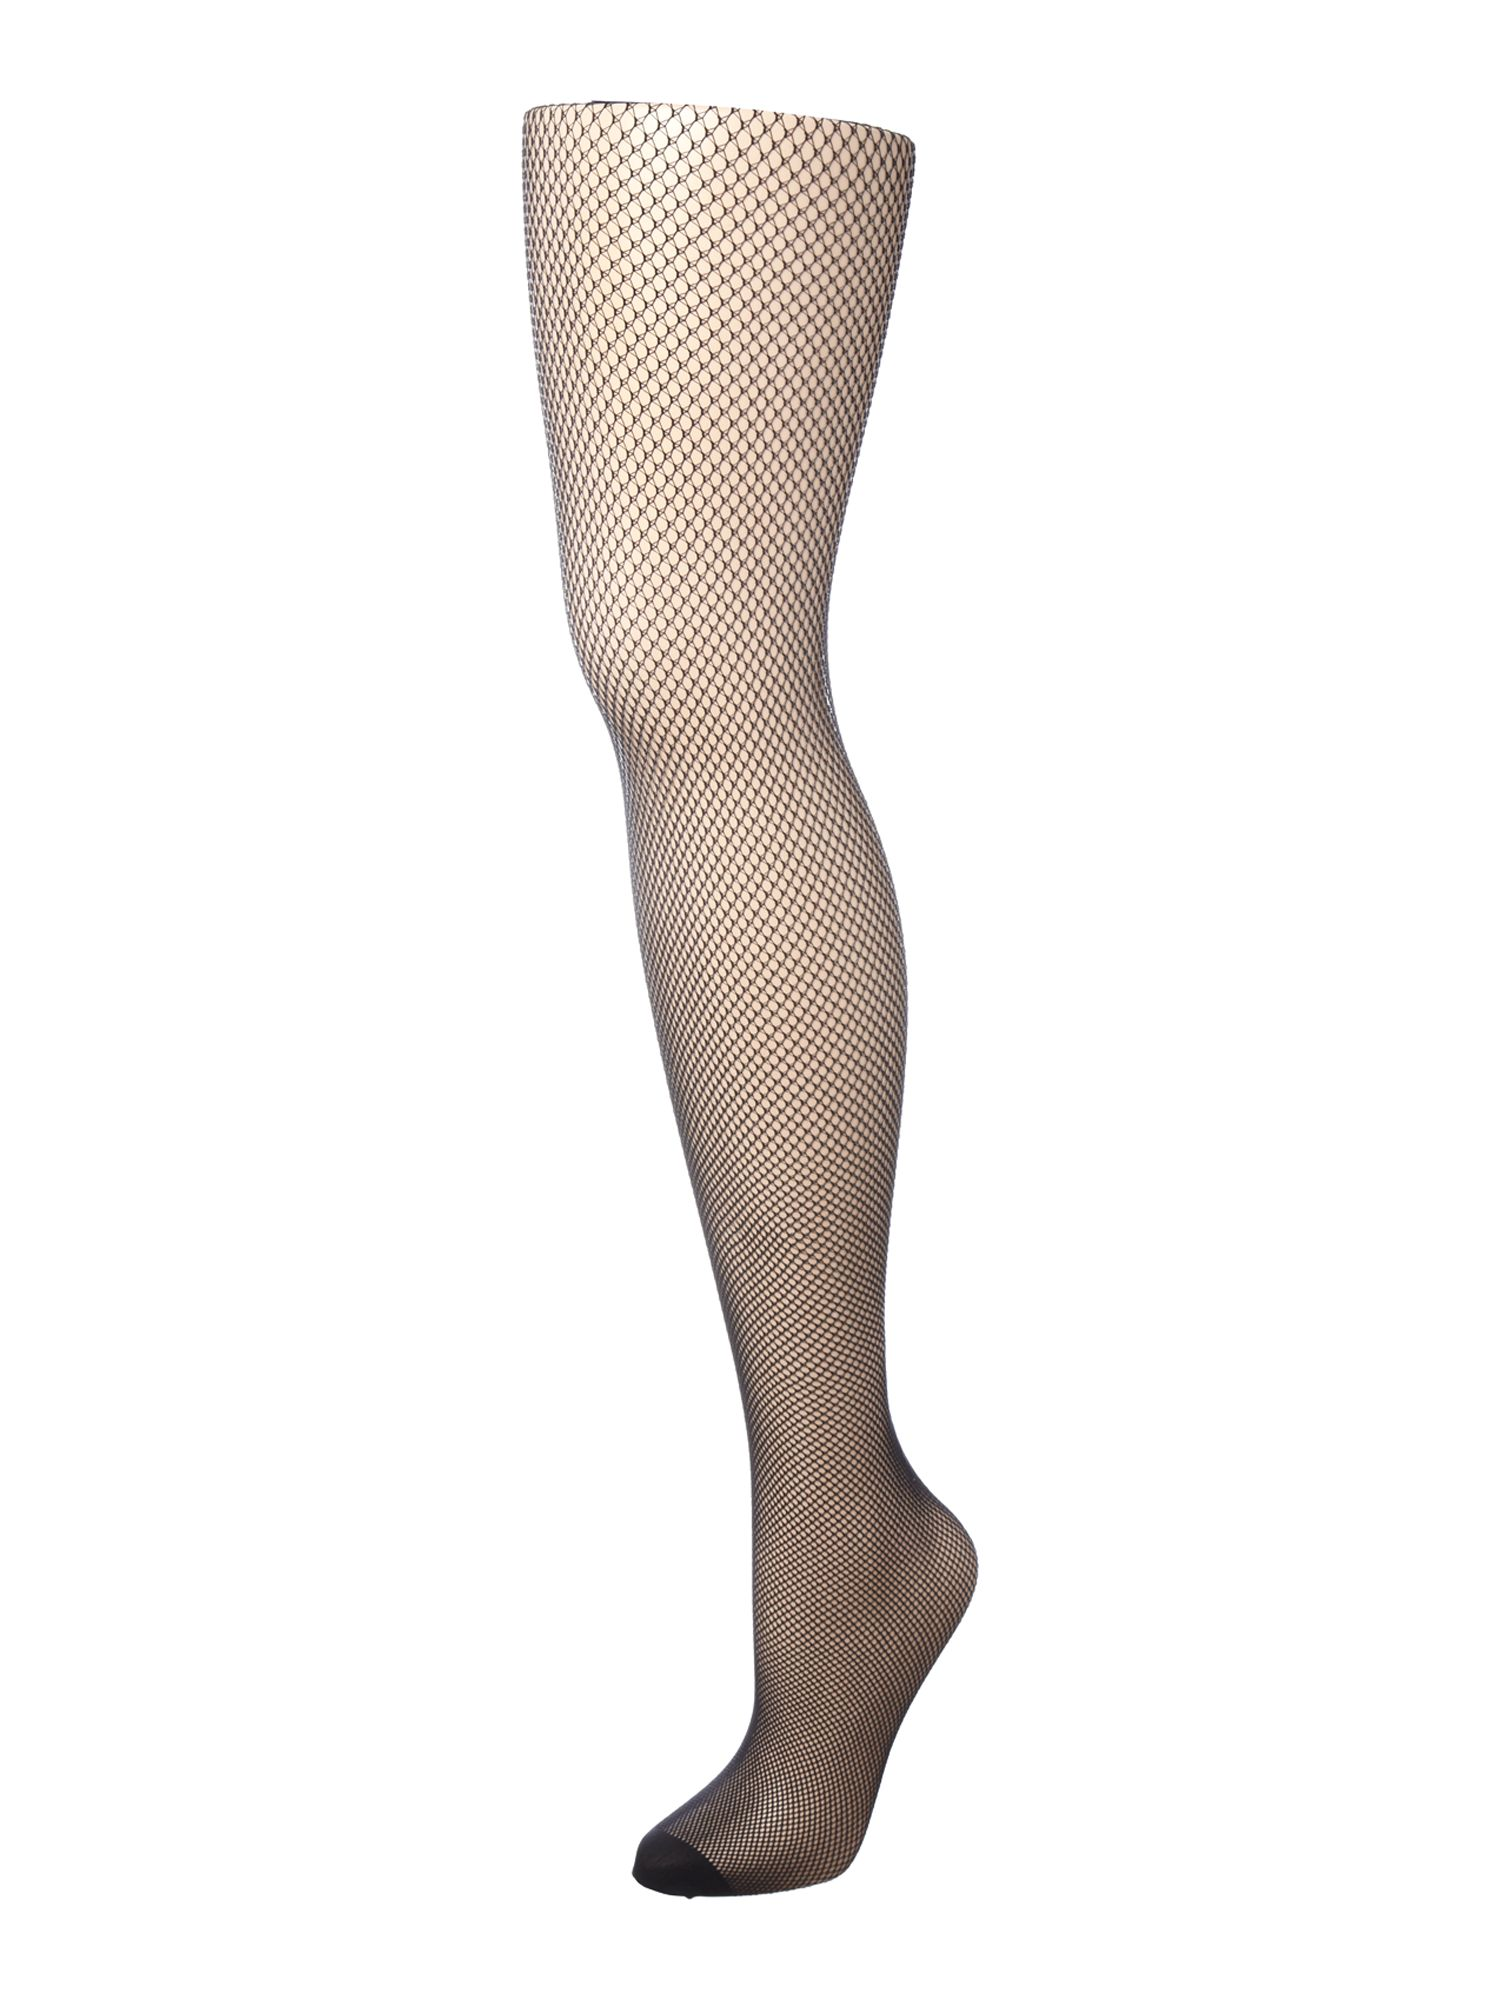 Net seam tights